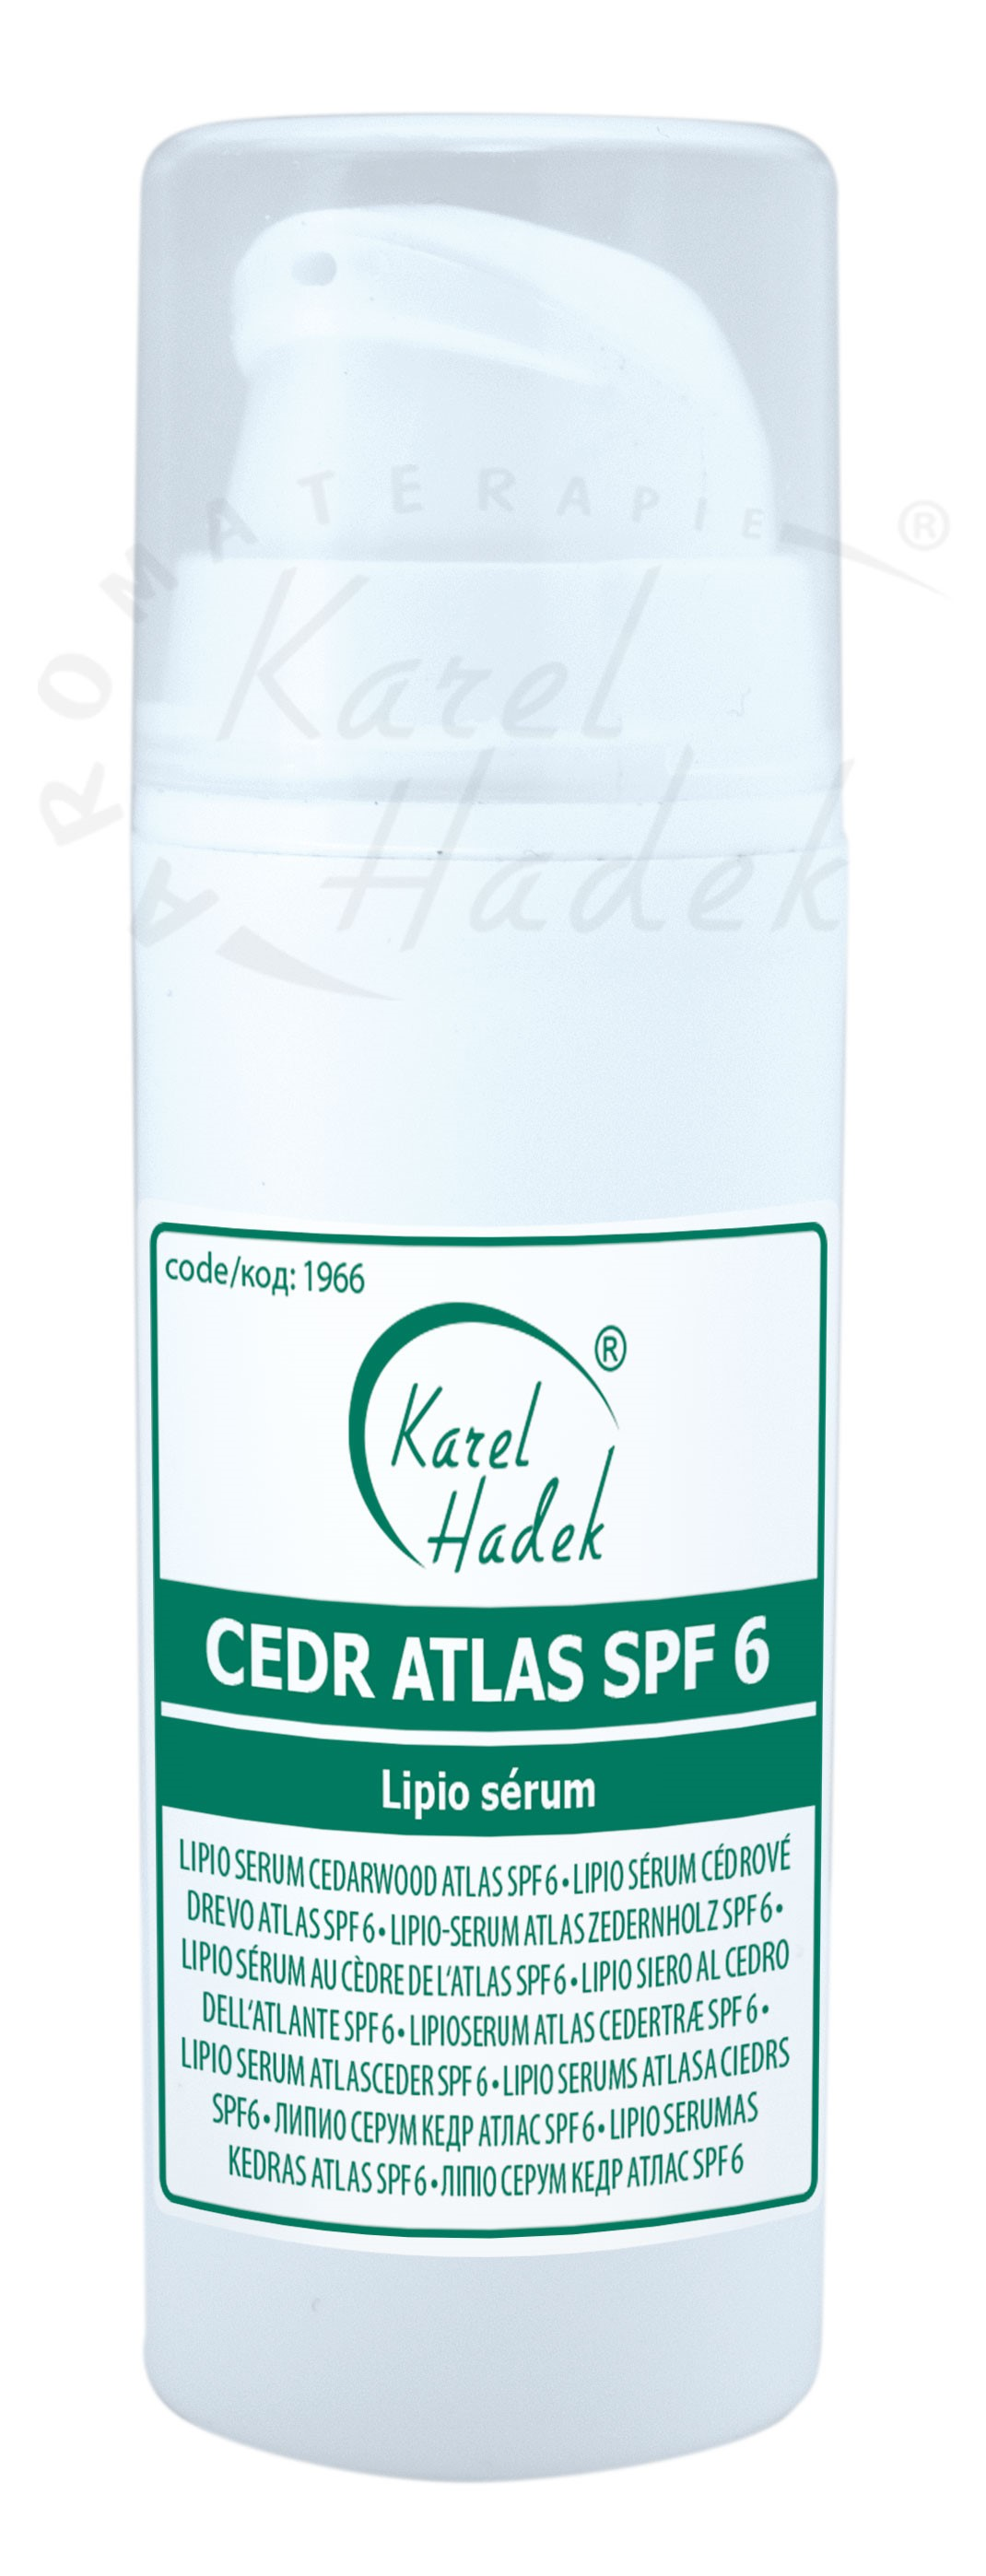 KH - CEDR ATLAS SPF 6 LIPIO SÉRUM 30 ml